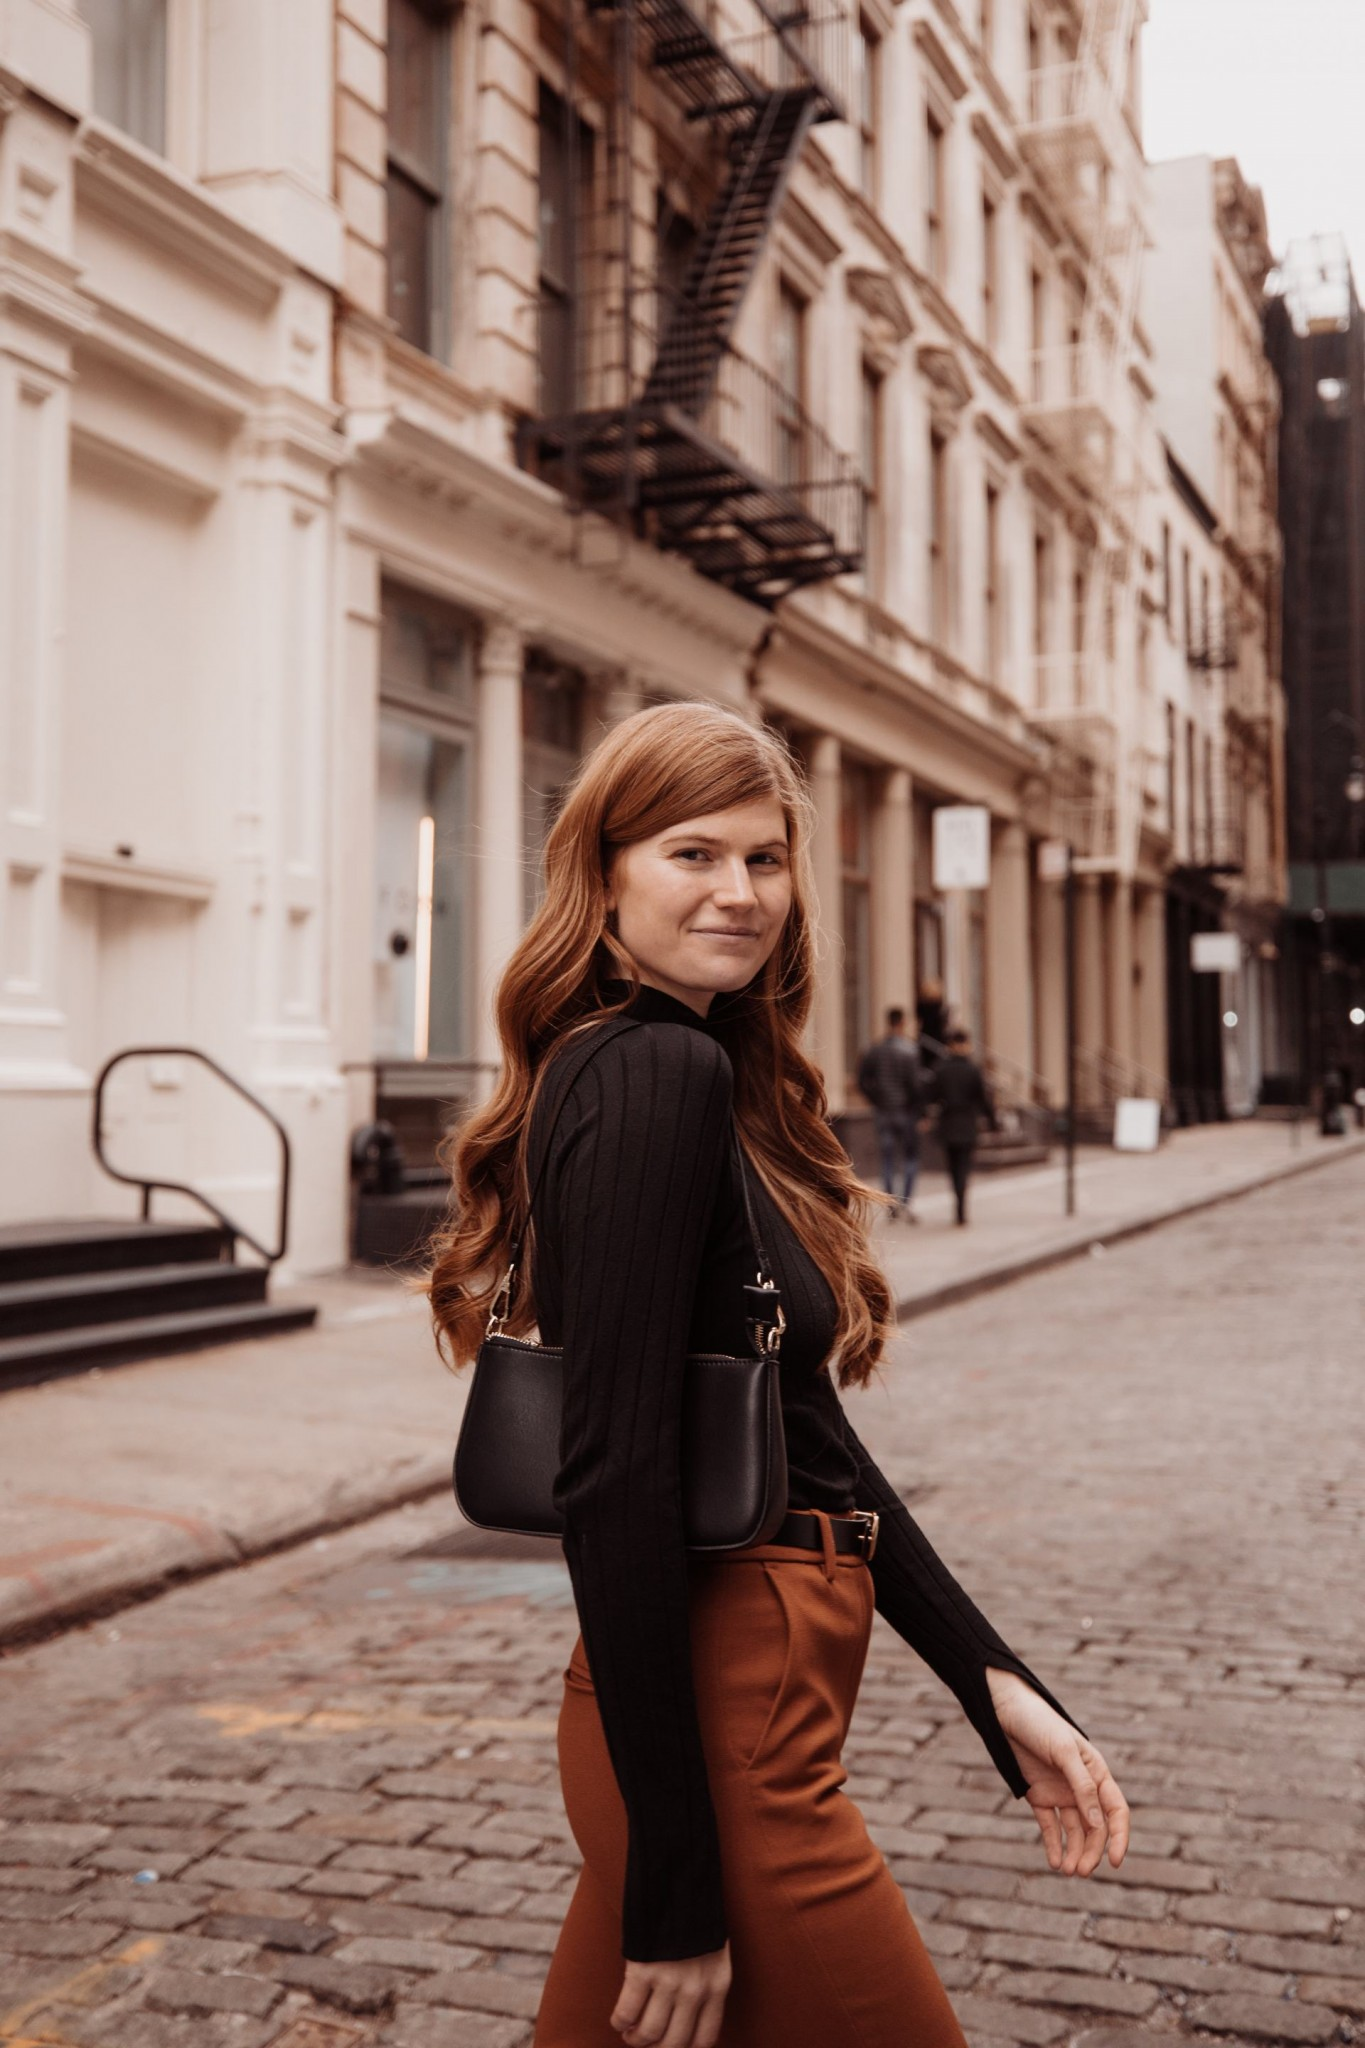 Lifestyle blogger Mollie Moore shares her favorite affordable British brands